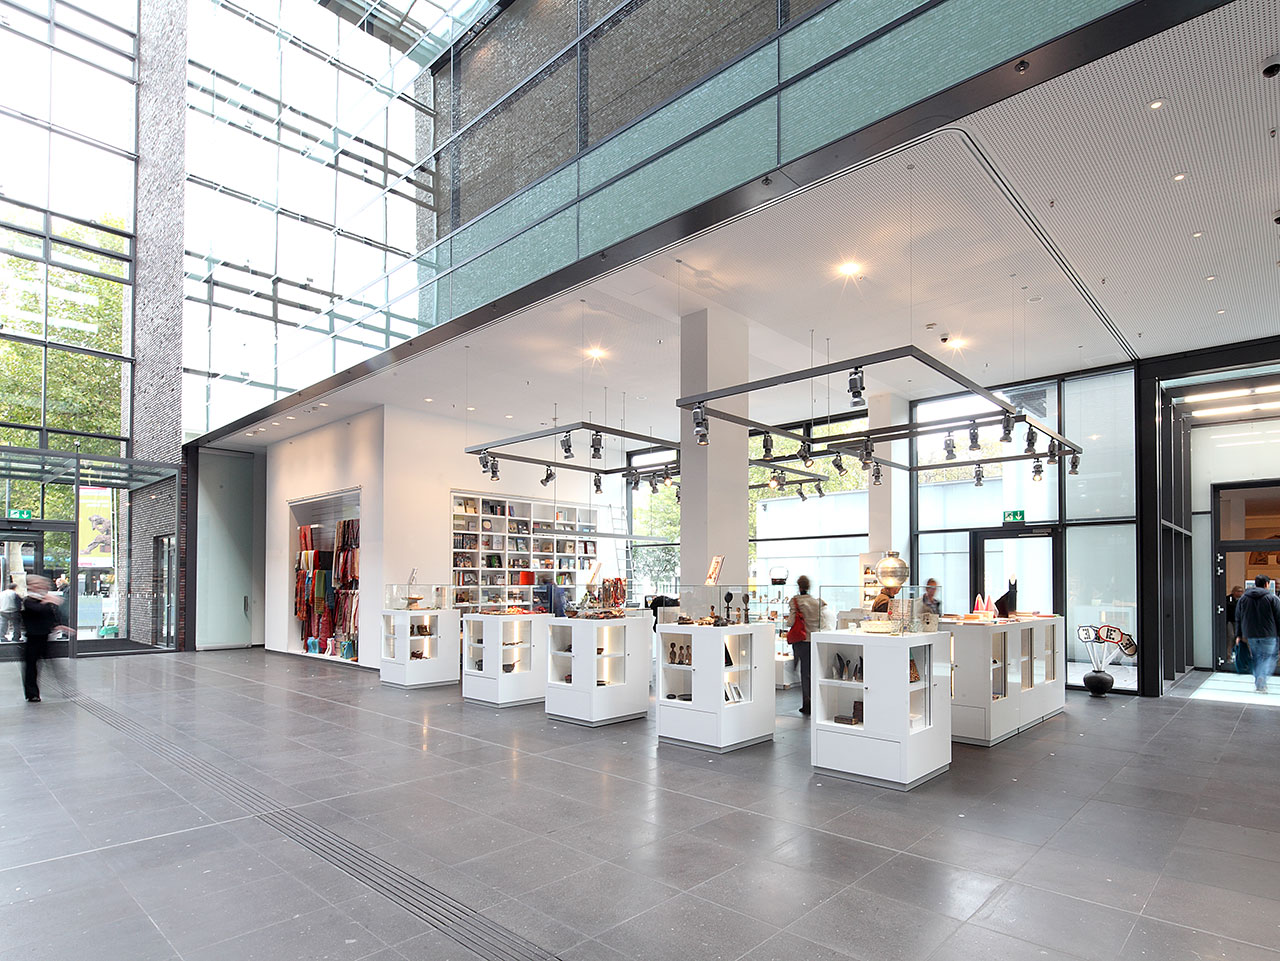 Kulturzentrum-am-Neumarkt---Shop.jpg